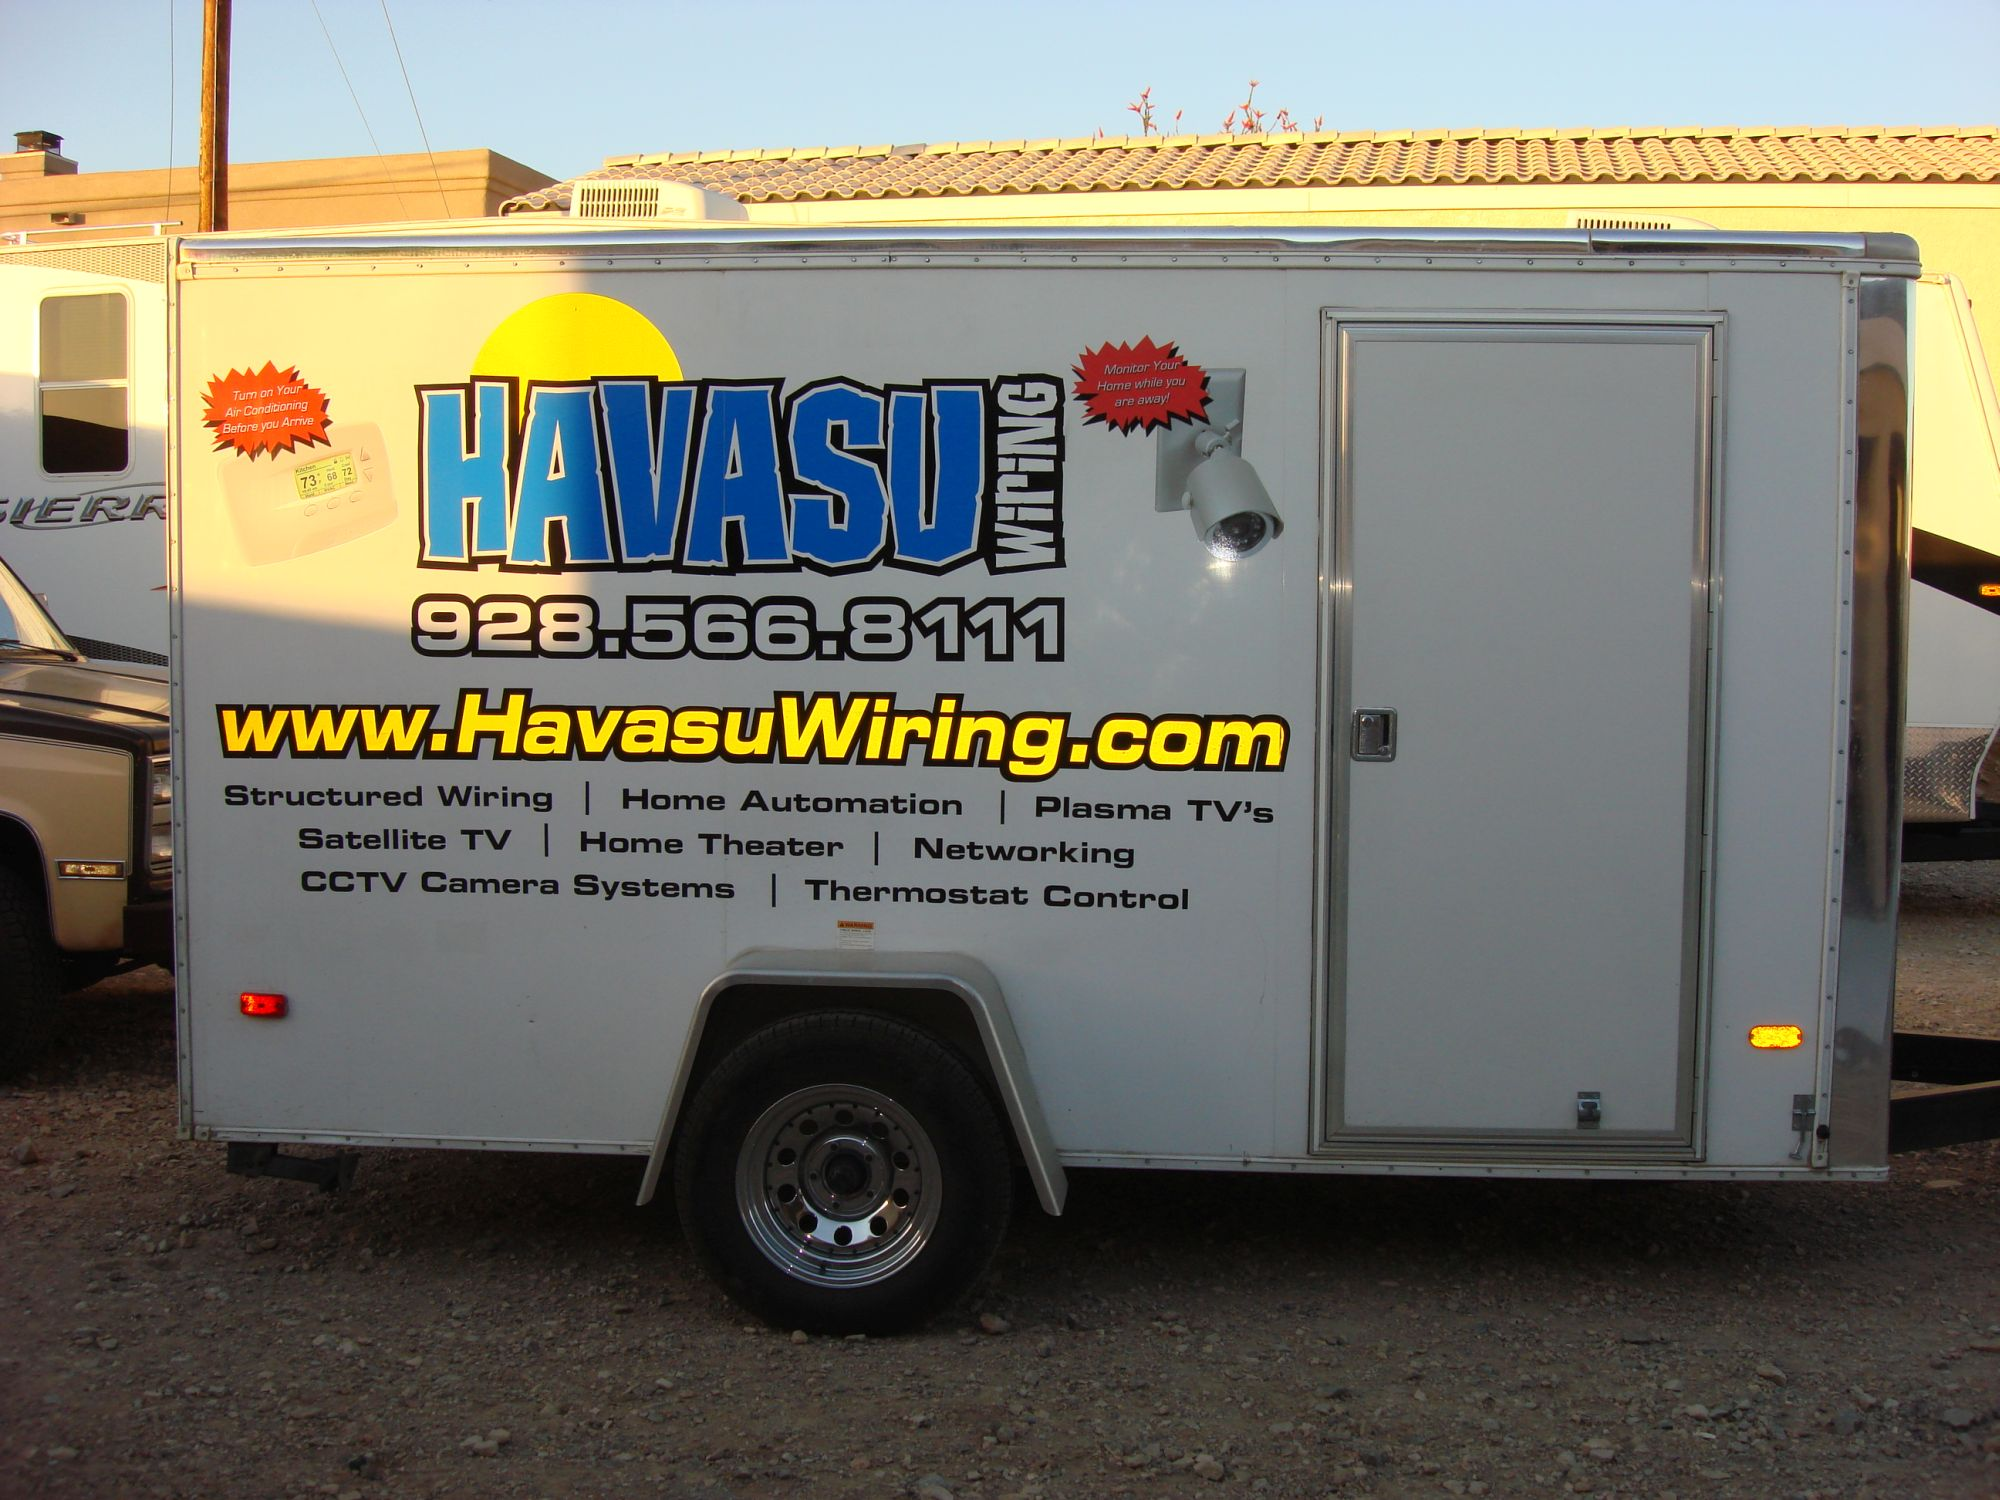 Havasu Wiring Smart Homes Sound Security Cameras And All Satellite House Was Started In 2006 Our Team Has Been The Audio Video Telecom Business Since 1995 We Have Worked Every Position From Grunt Installer To